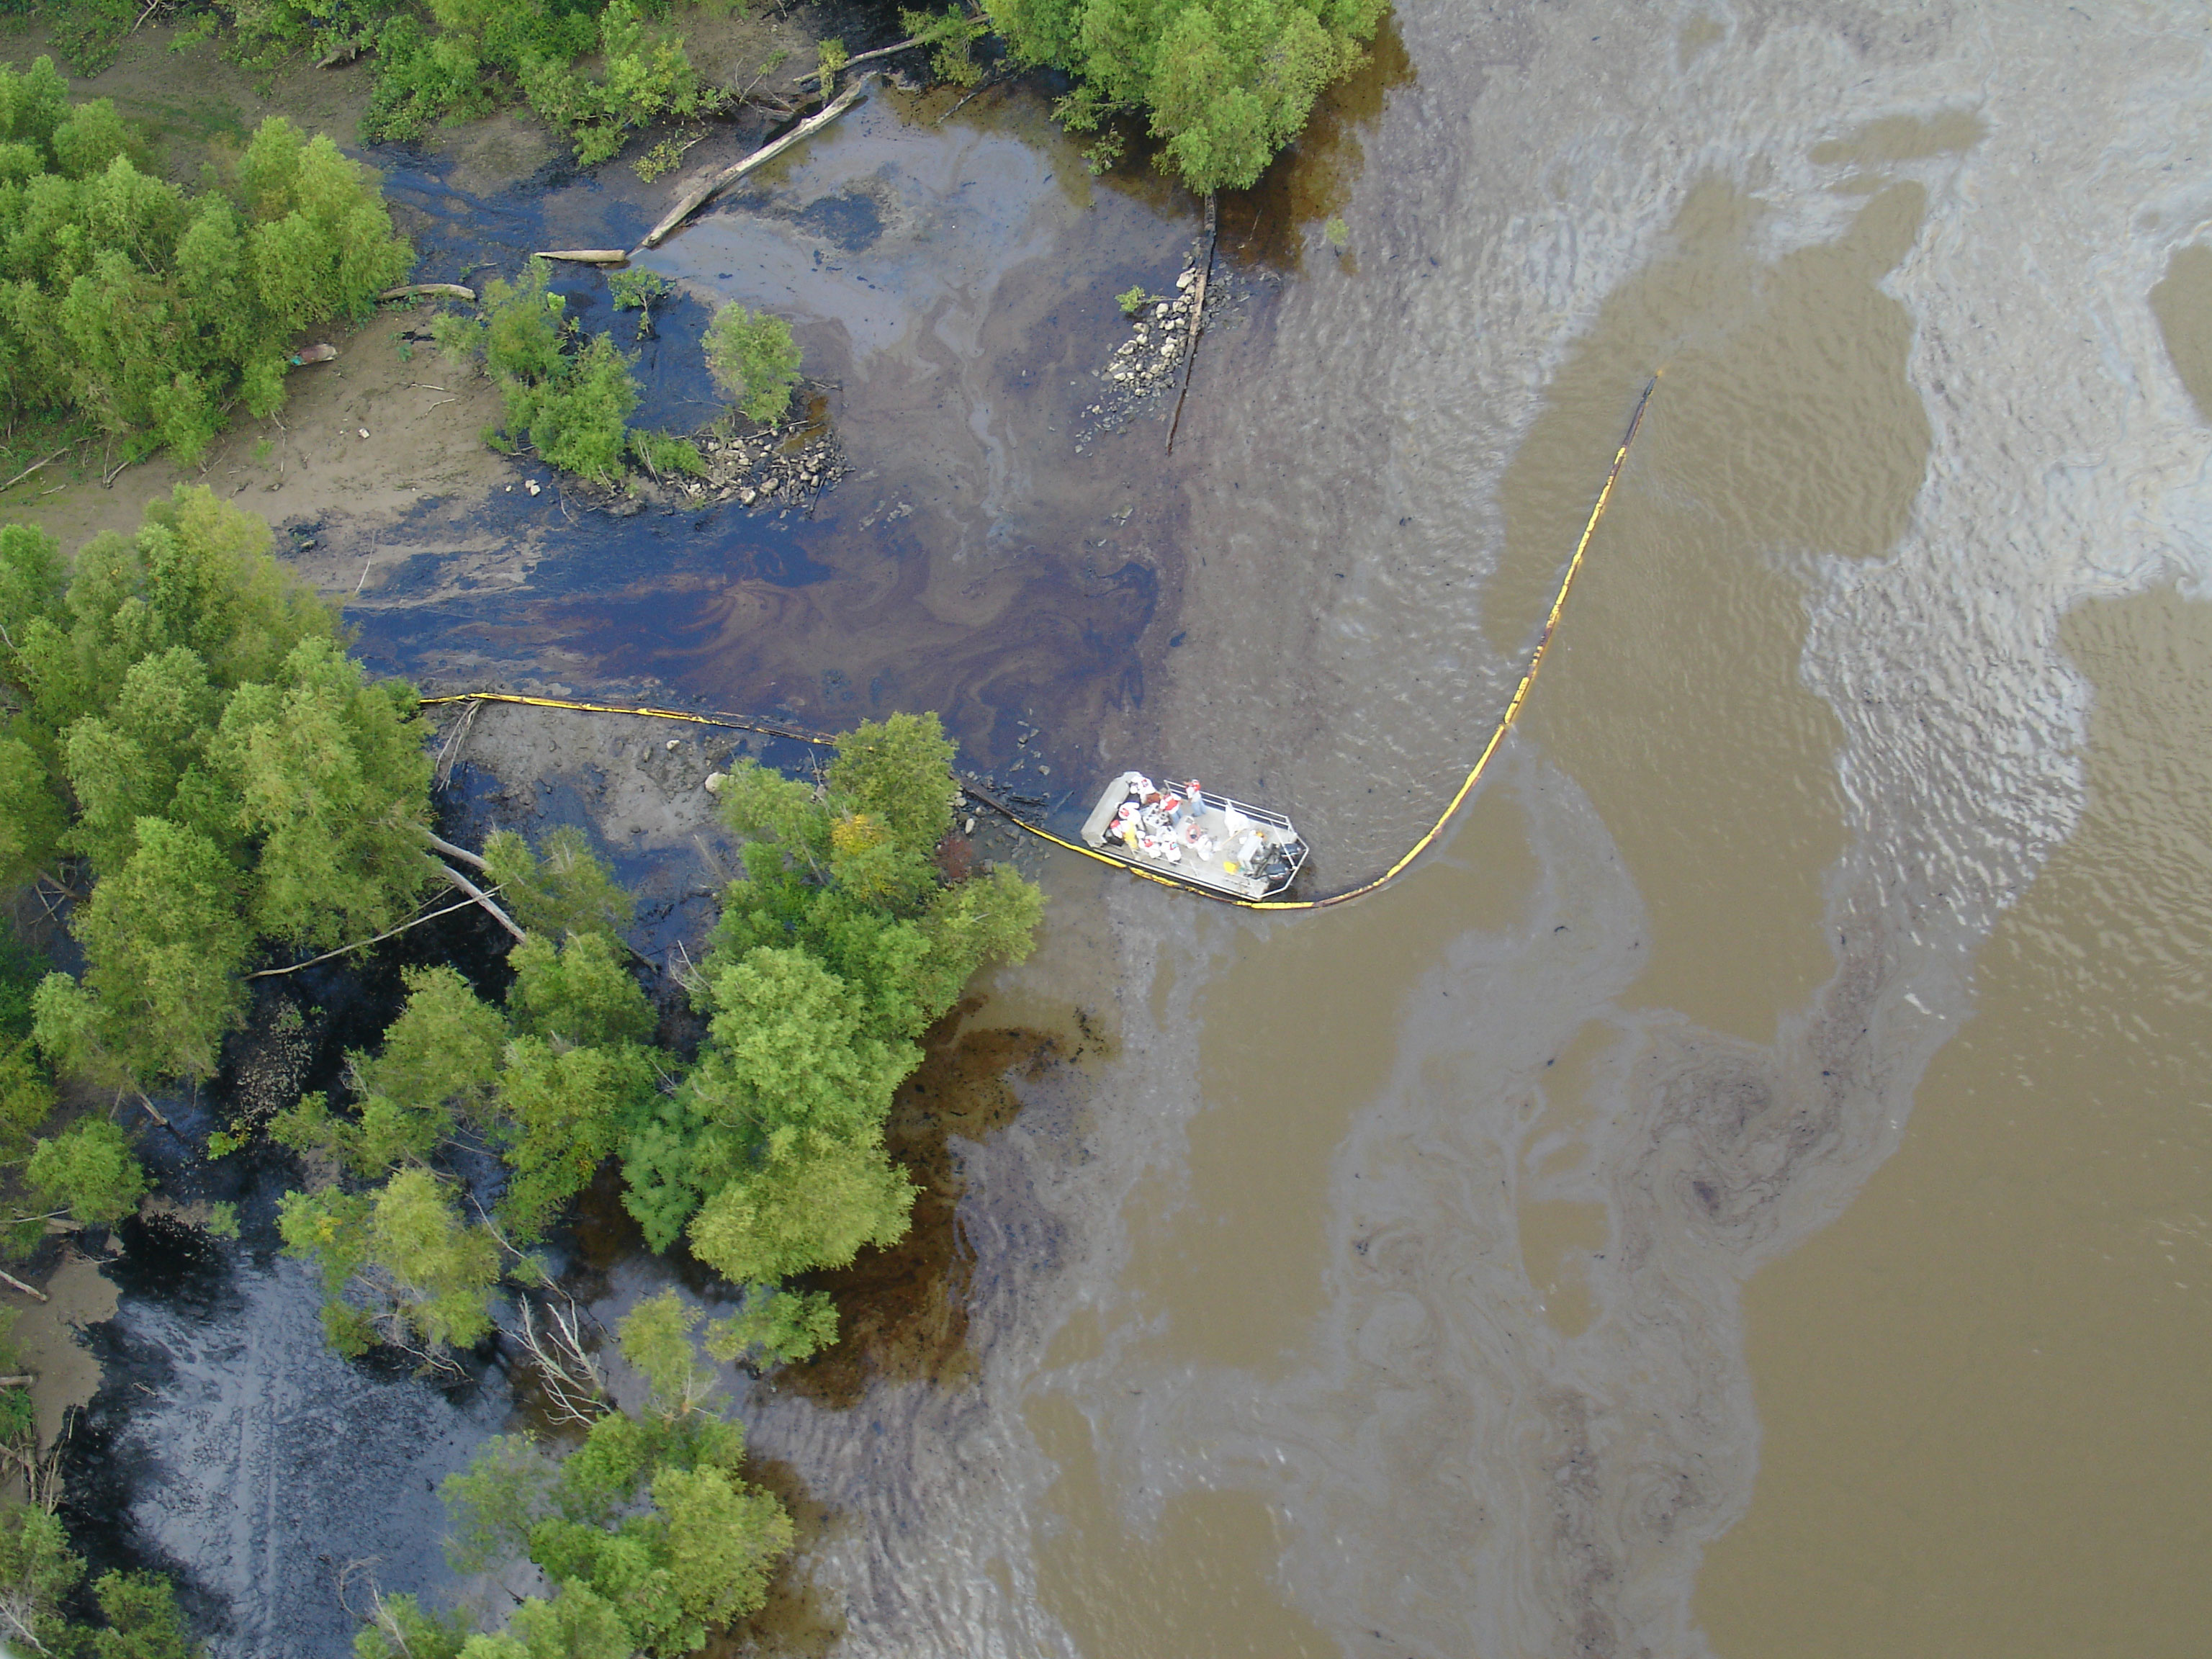 Two days after the spill occurred, oil had spread nearly 100 miles downriver, and carried into forested batture habitat.